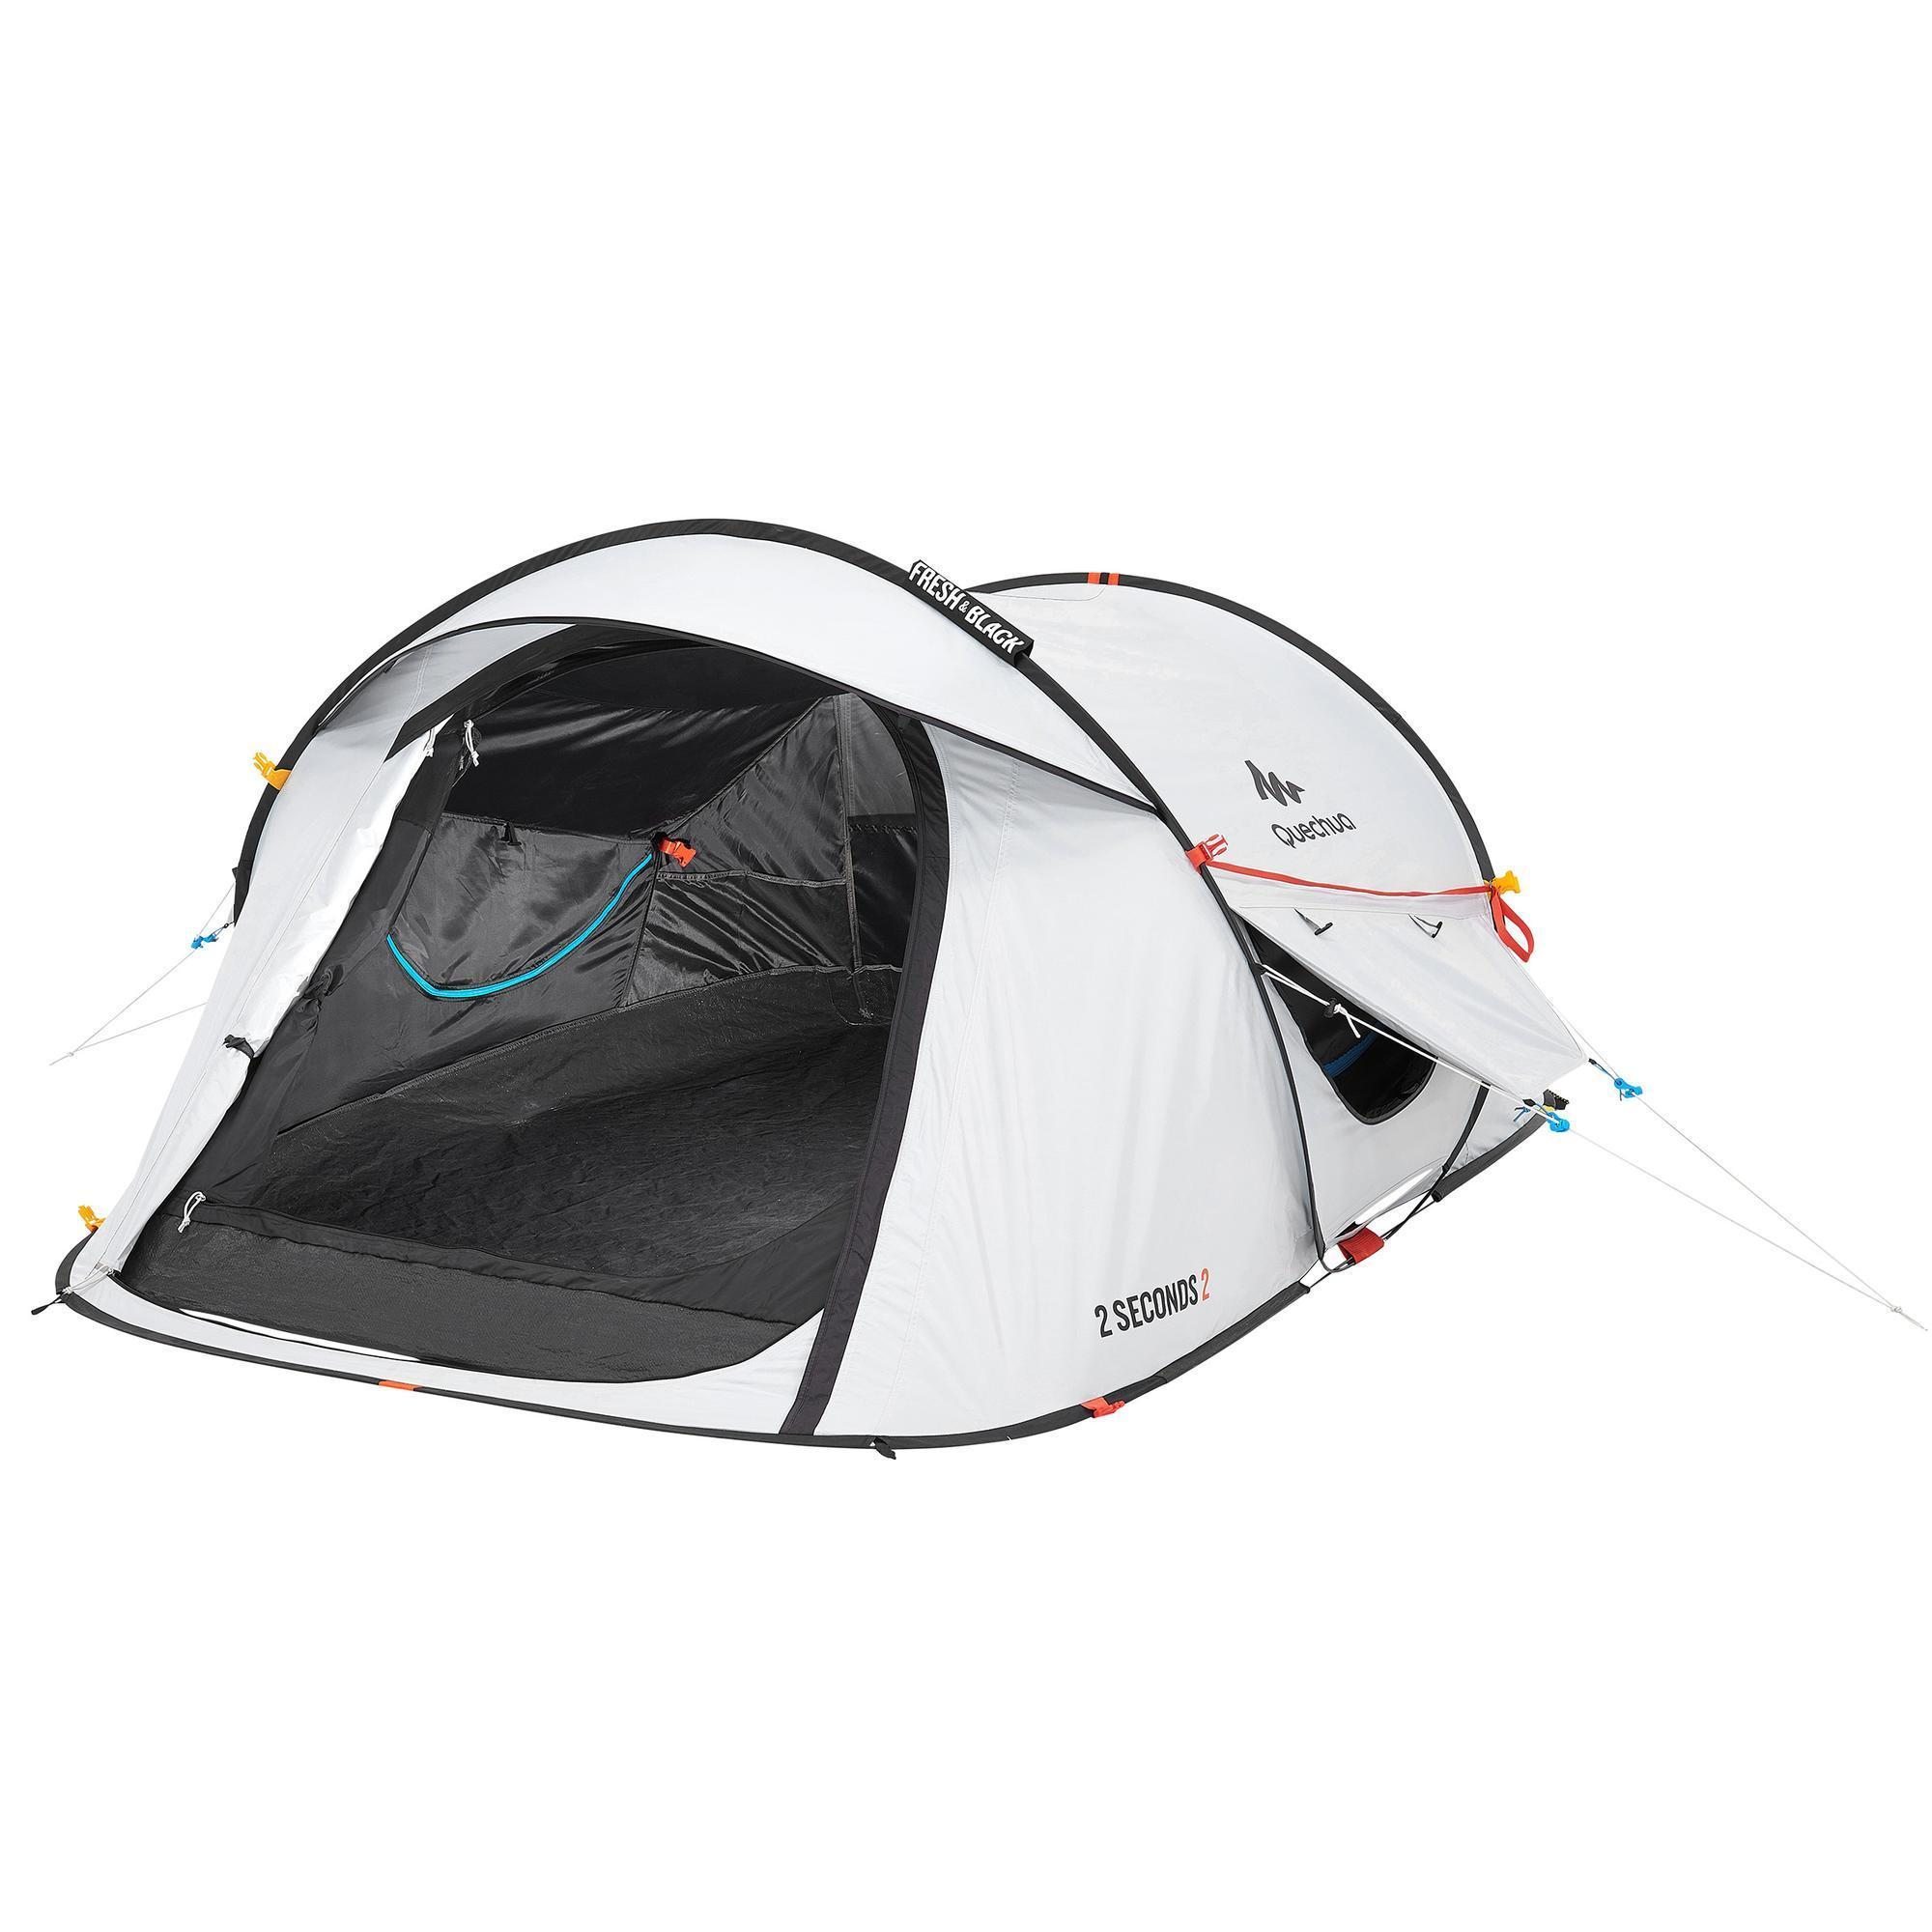 2 Seconds Freshu0026Black 2 Pers  sc 1 st  Quechua & Camping tents for 1 to 3 people | Quechua